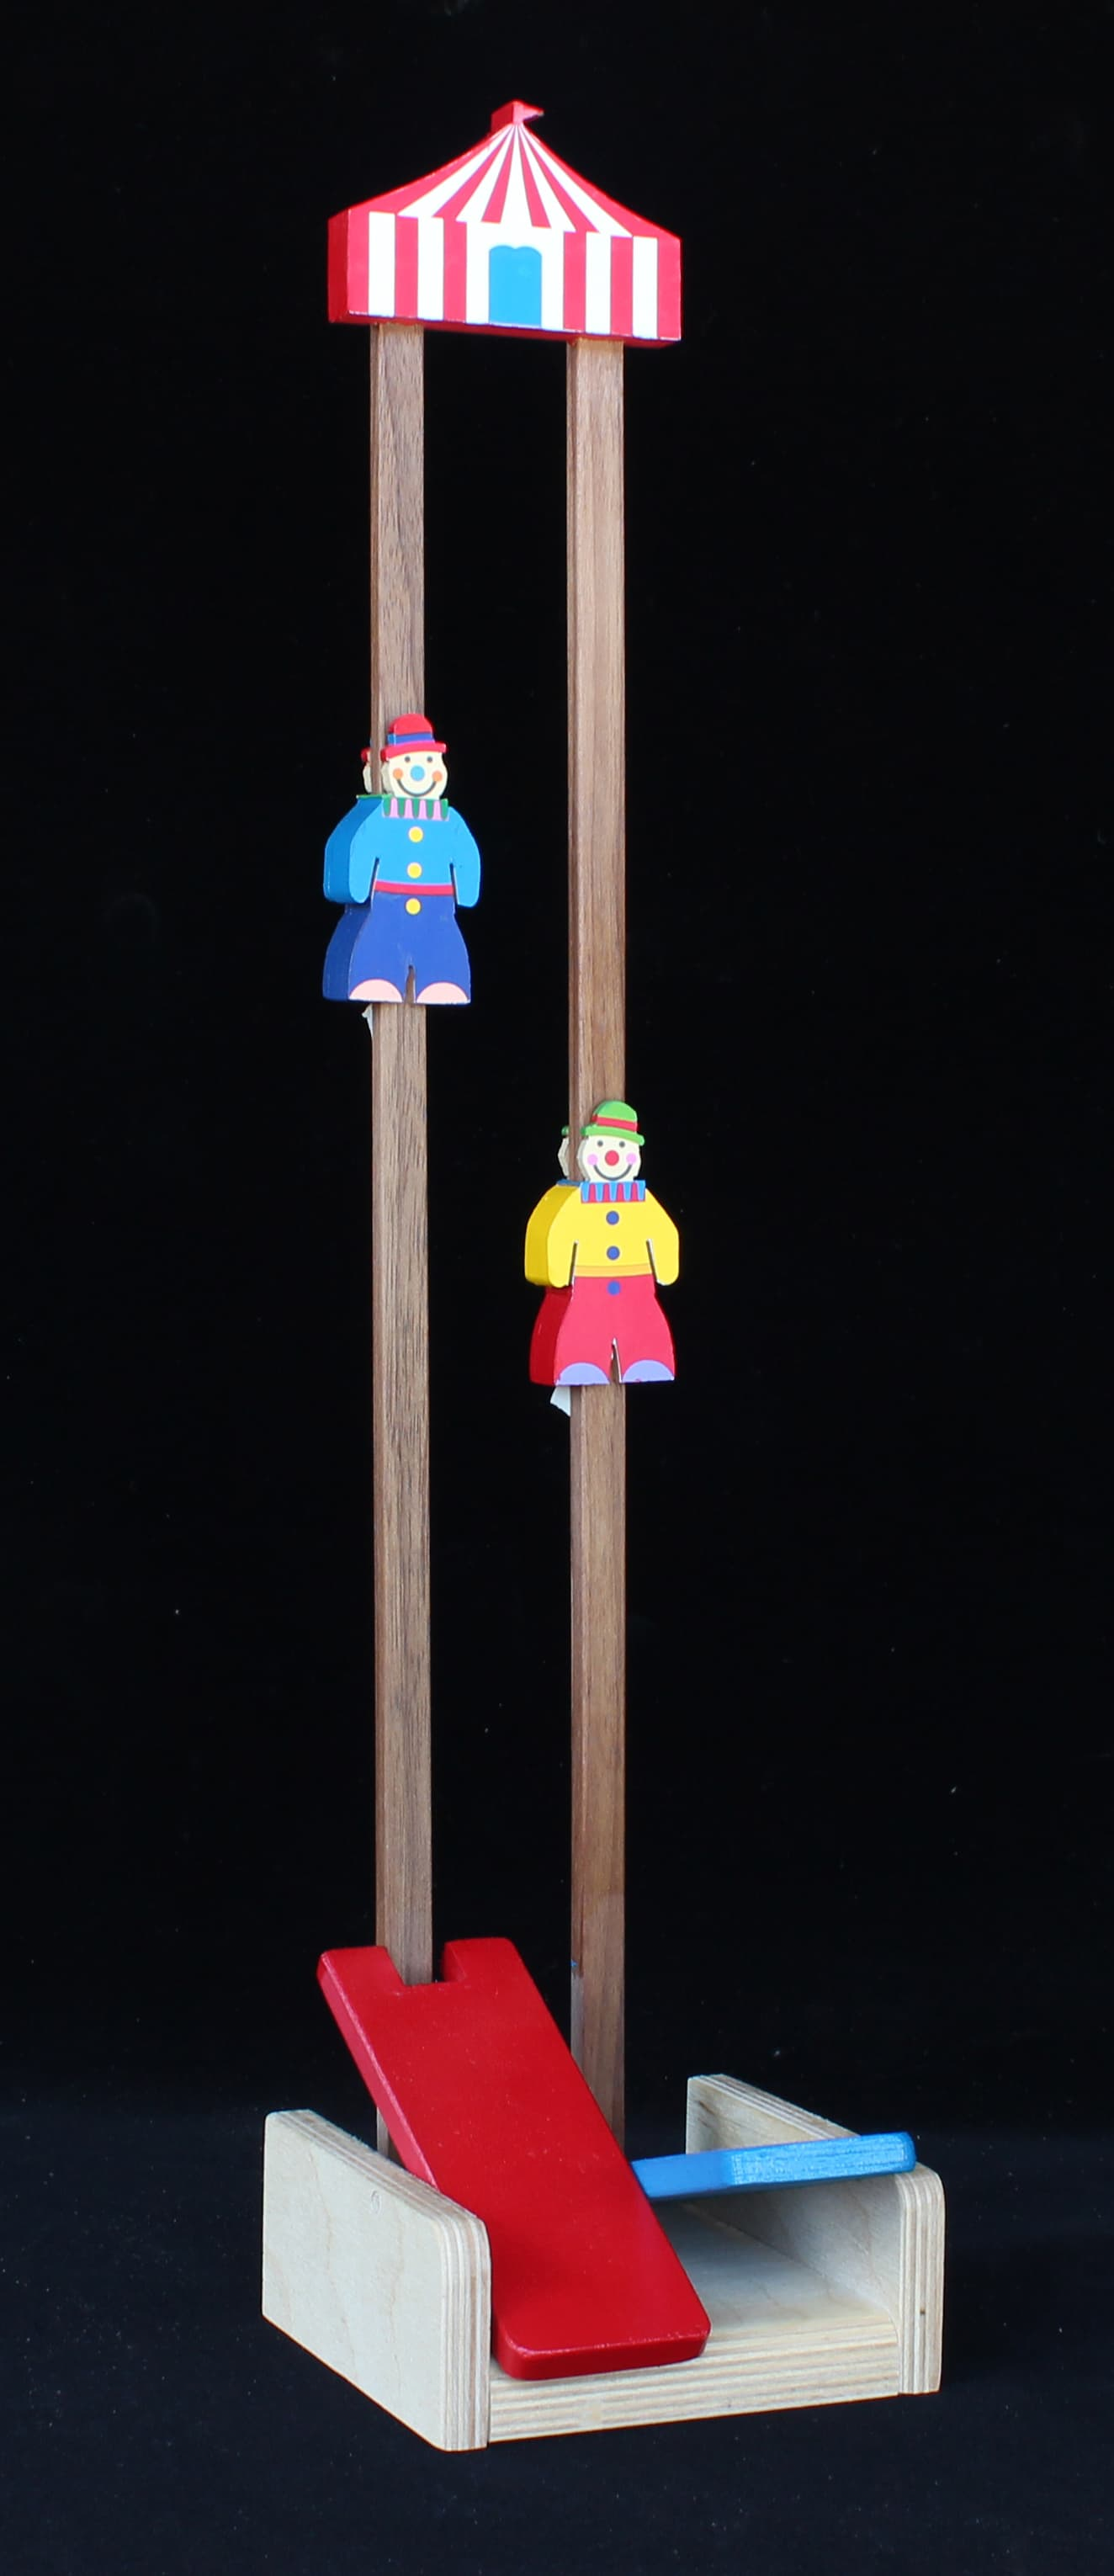 Hit the paddles and the colorful wood clowns jump to the top